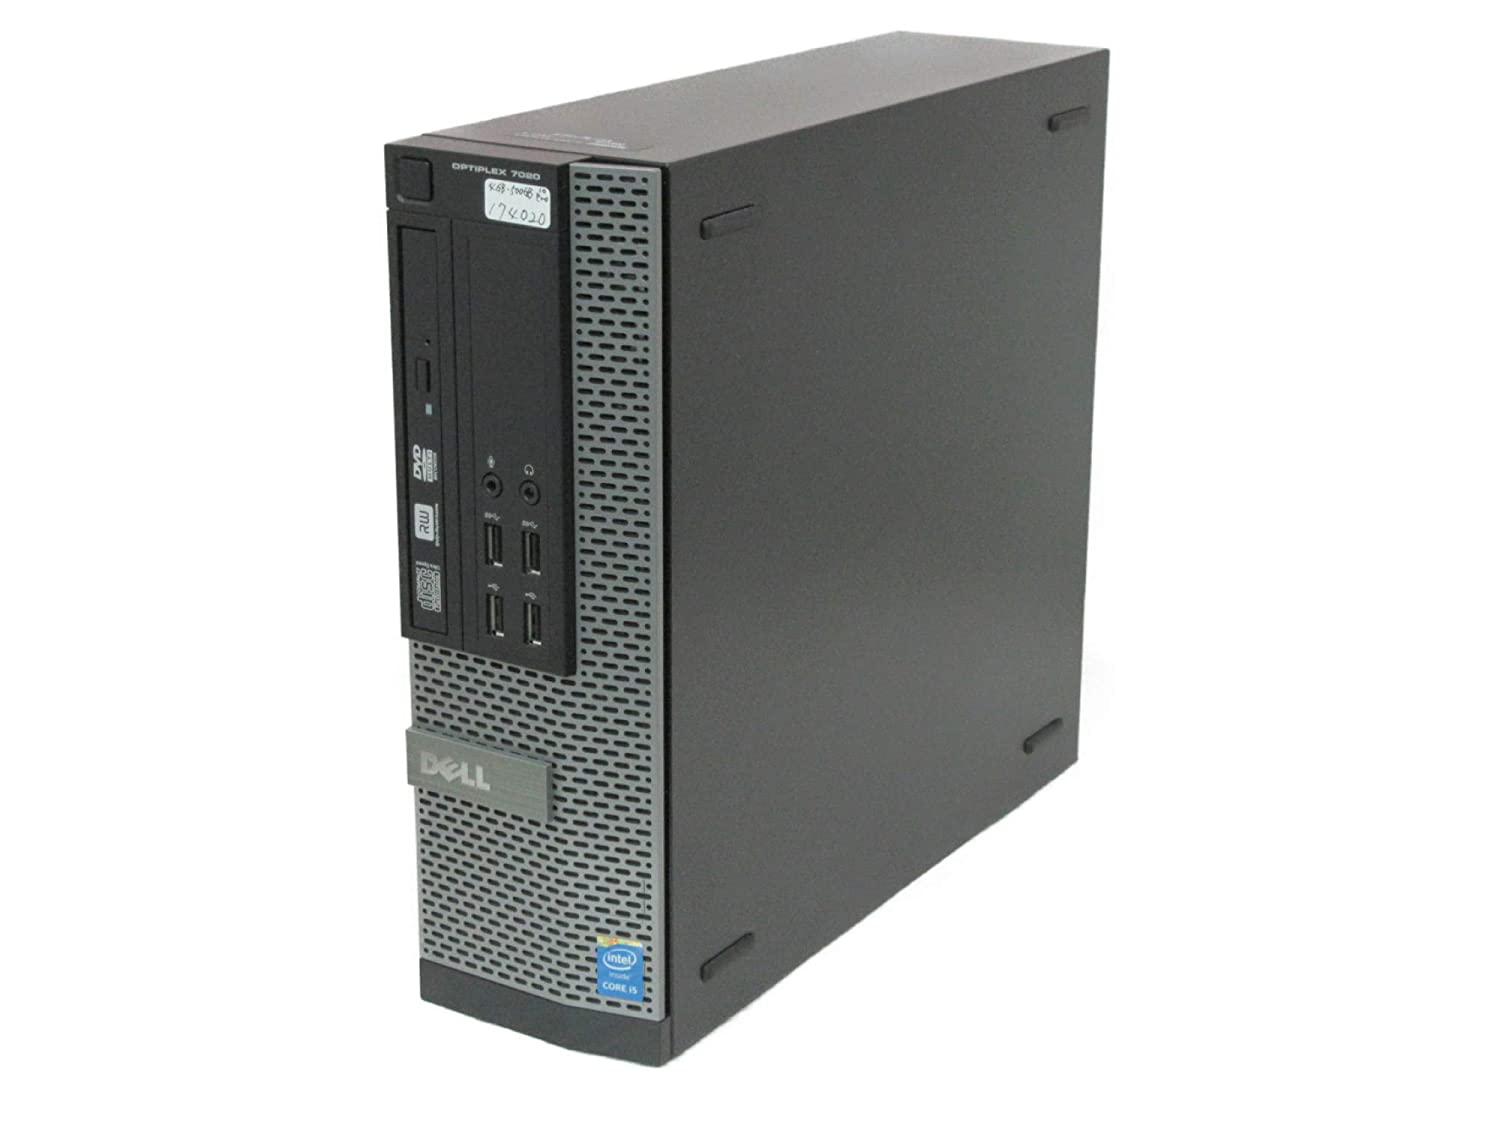 高級品市場 【中古】 デル デル D07S OptiPlex 7020SF 64bit デスクトップパソコン Core i5 4590 3.3GHz メモリ4GB 500GBHDD DVDスーパーマルチ Windows10 Professional 64bit D07S B0776NKH54, トウオンシ:075ff3ee --- arbimovel.dominiotemporario.com